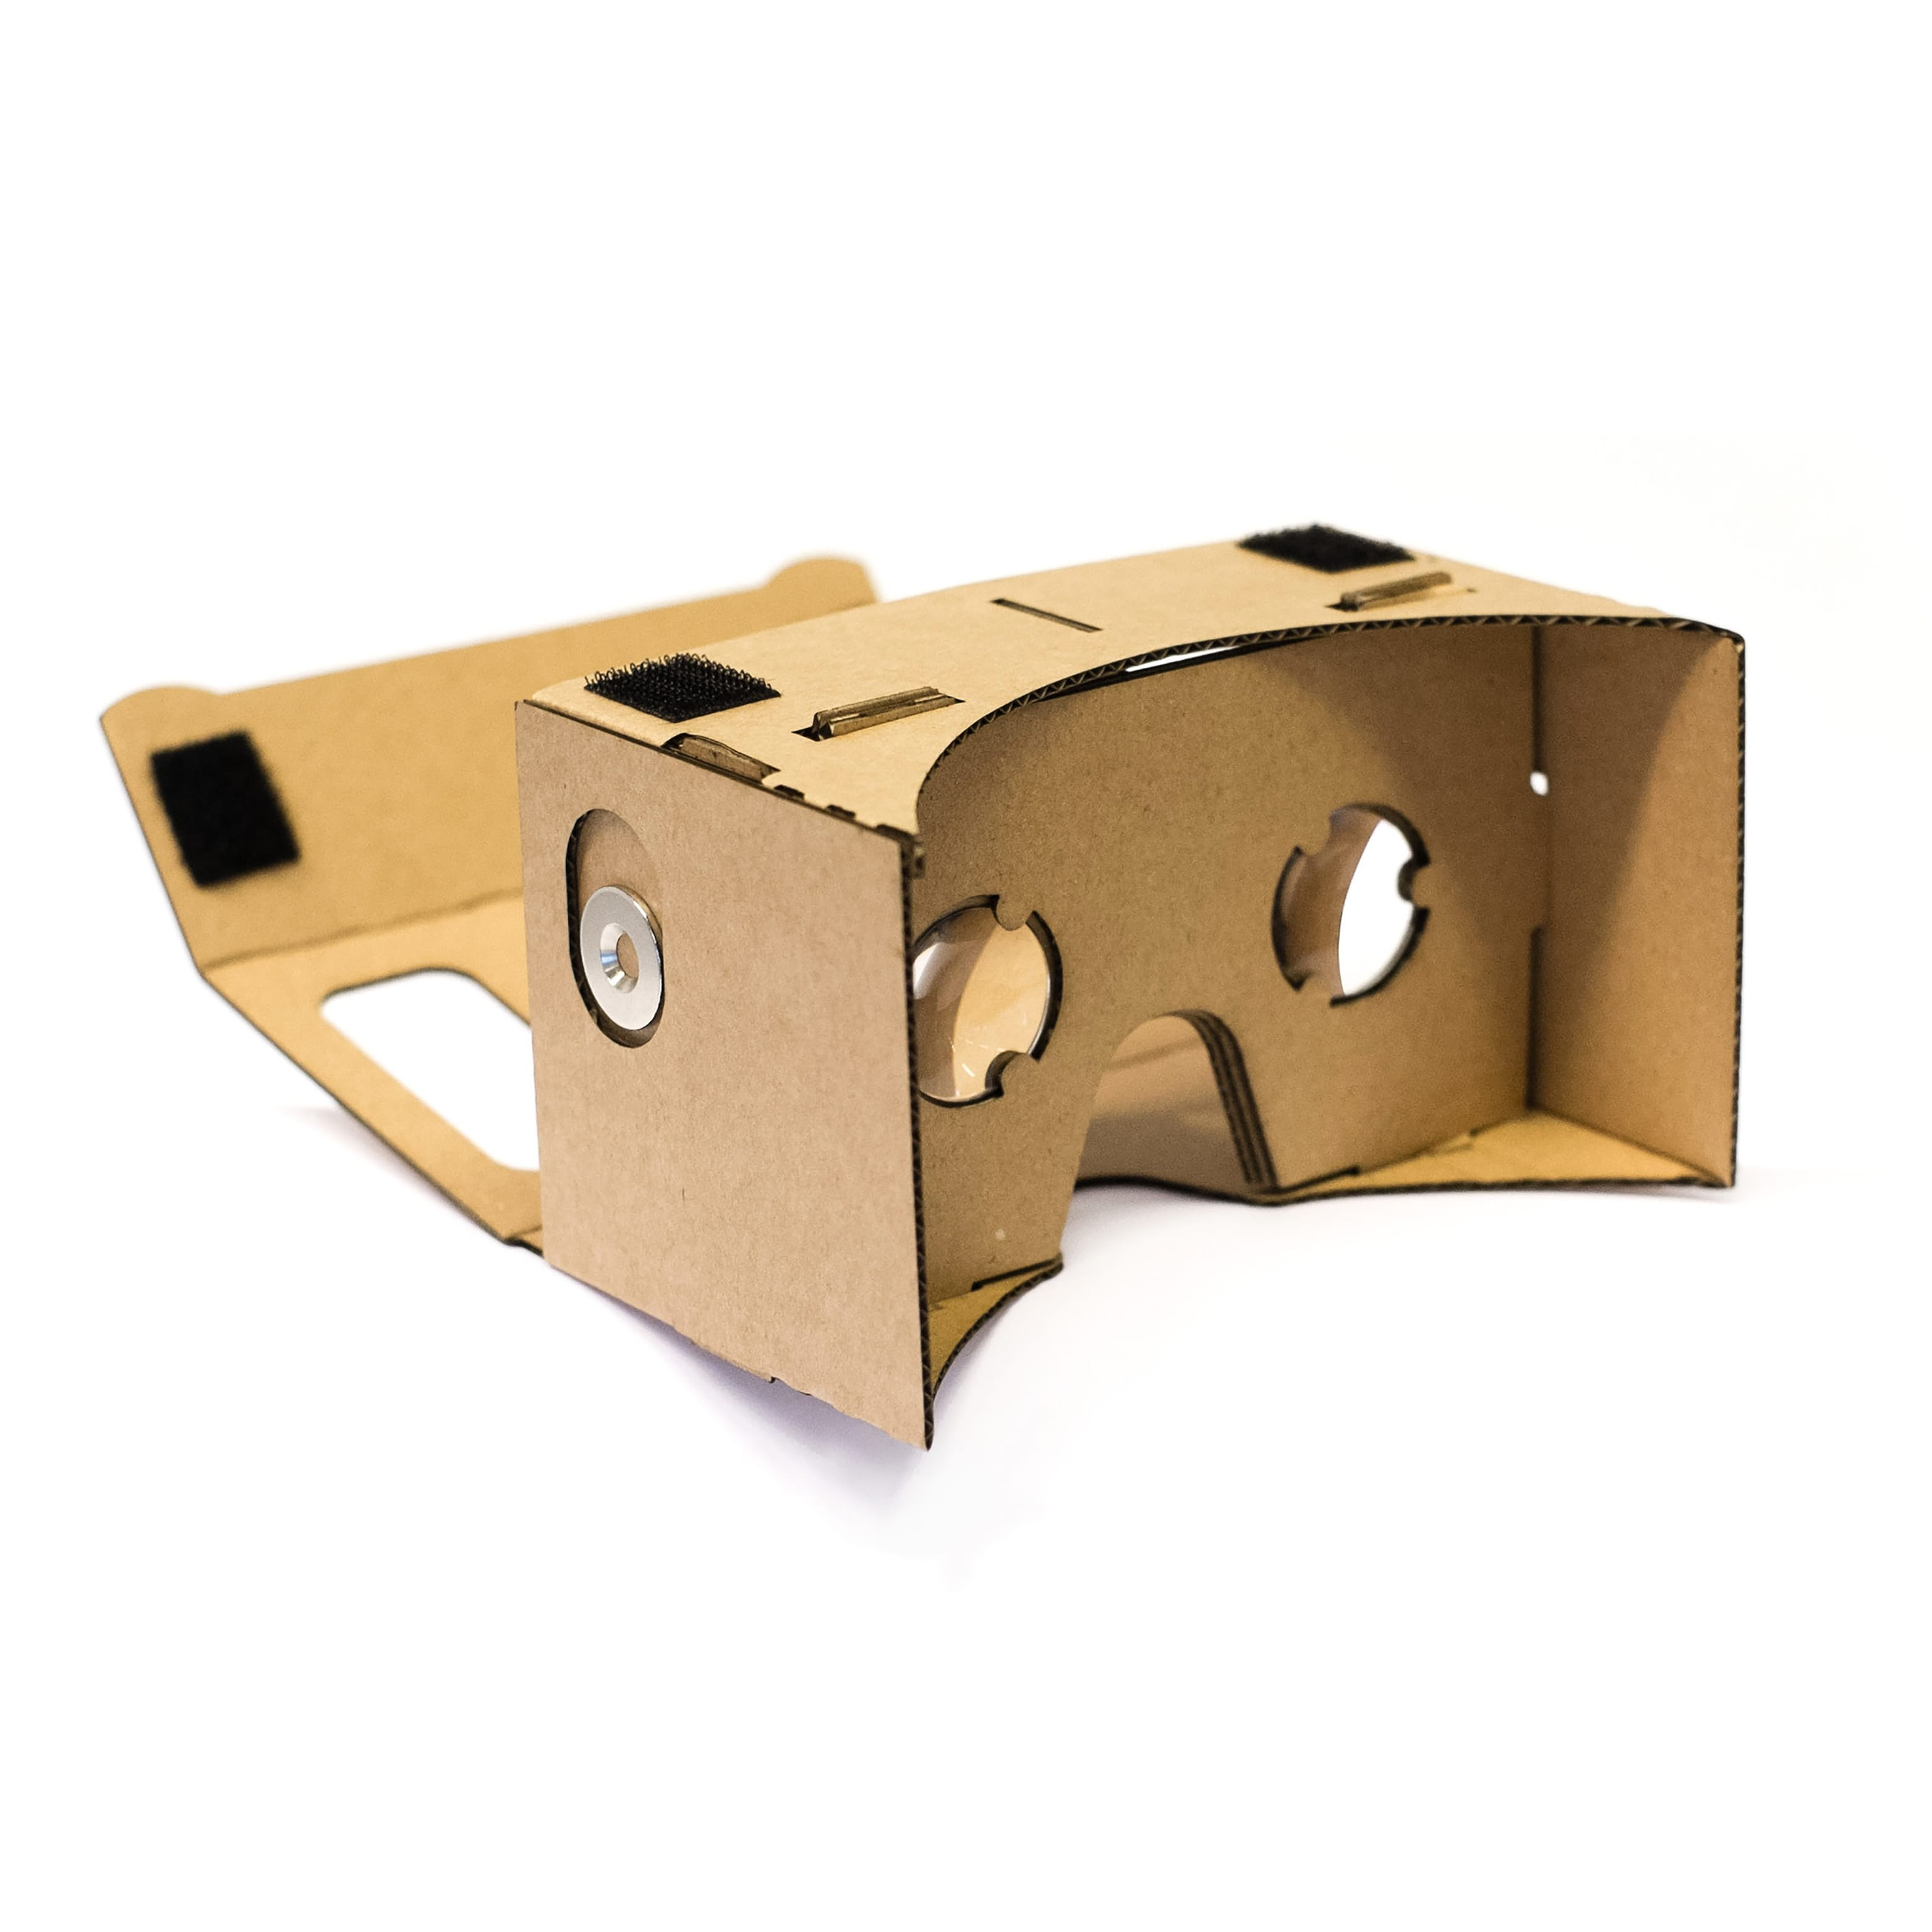 Brown Corrugated Cardboard example product.